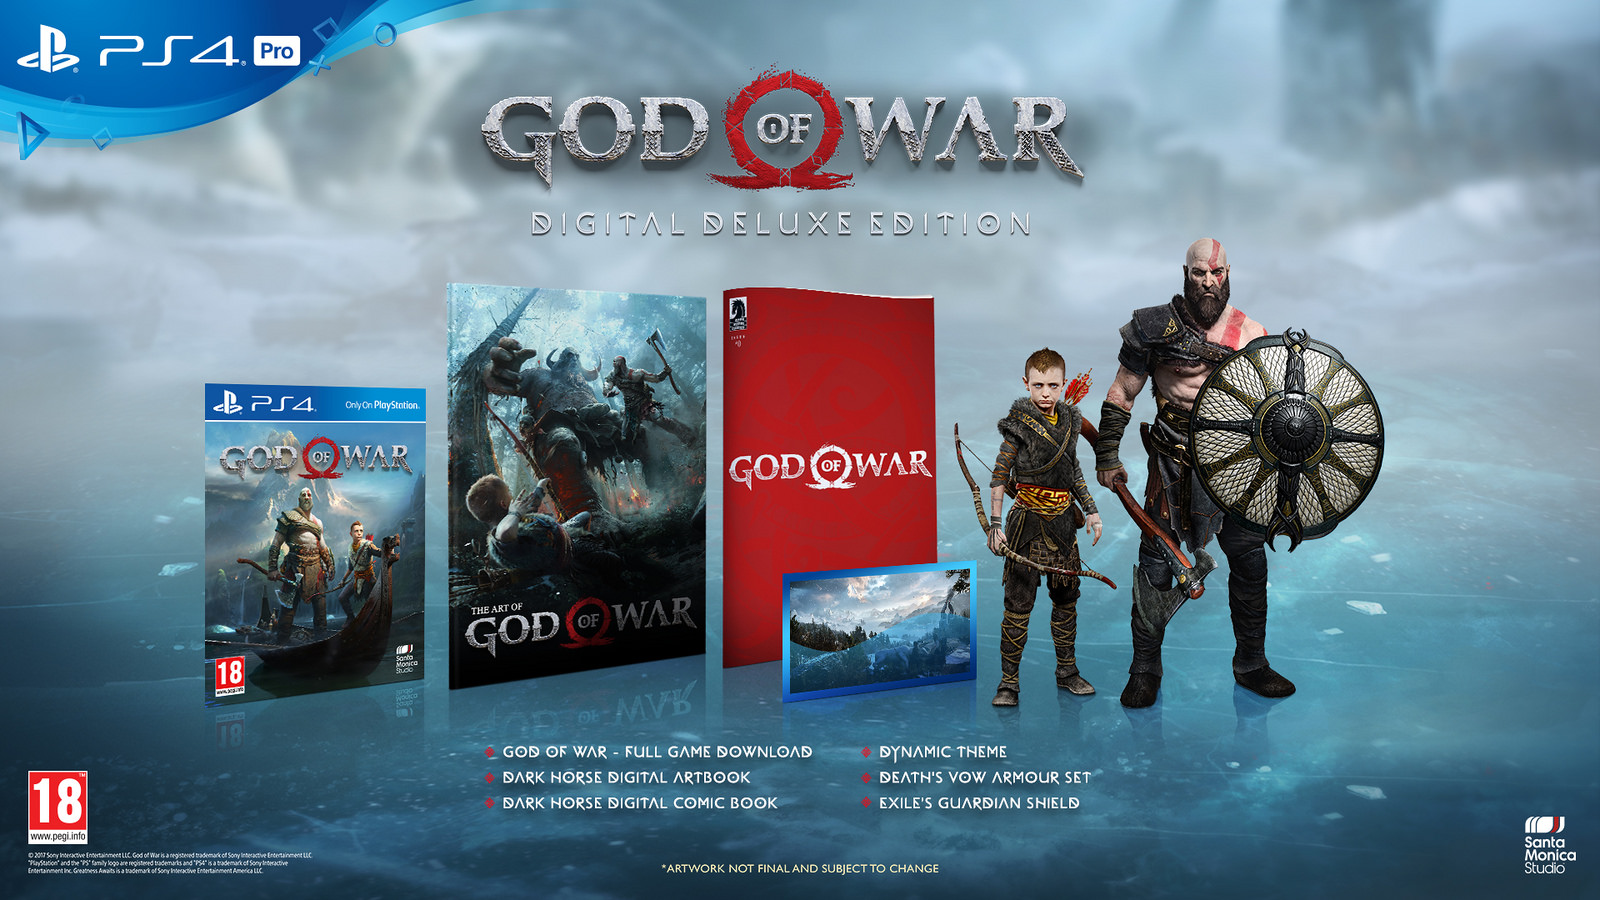 God of War Releasing On April 20th With Multiple Special Editions